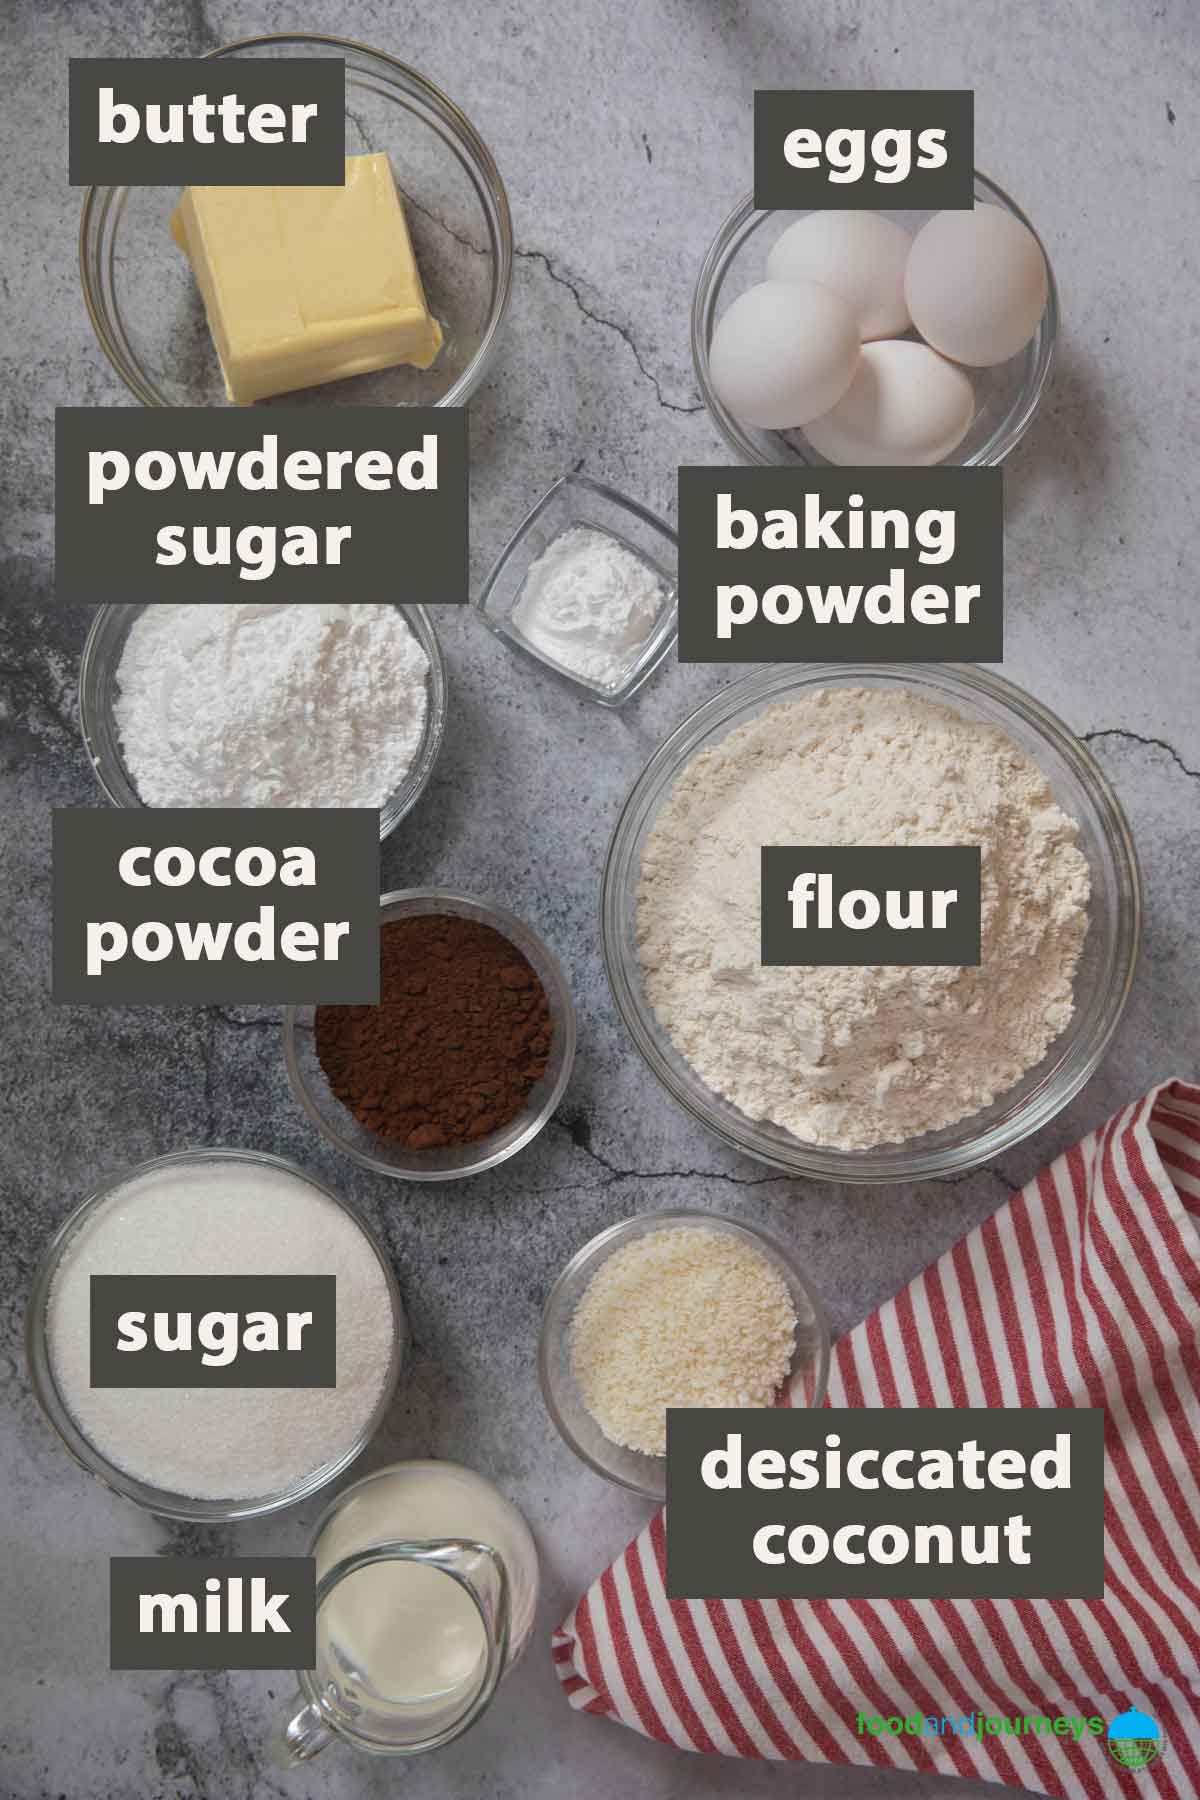 An image showing all the ingredients you need to prepare Kärleksmums.